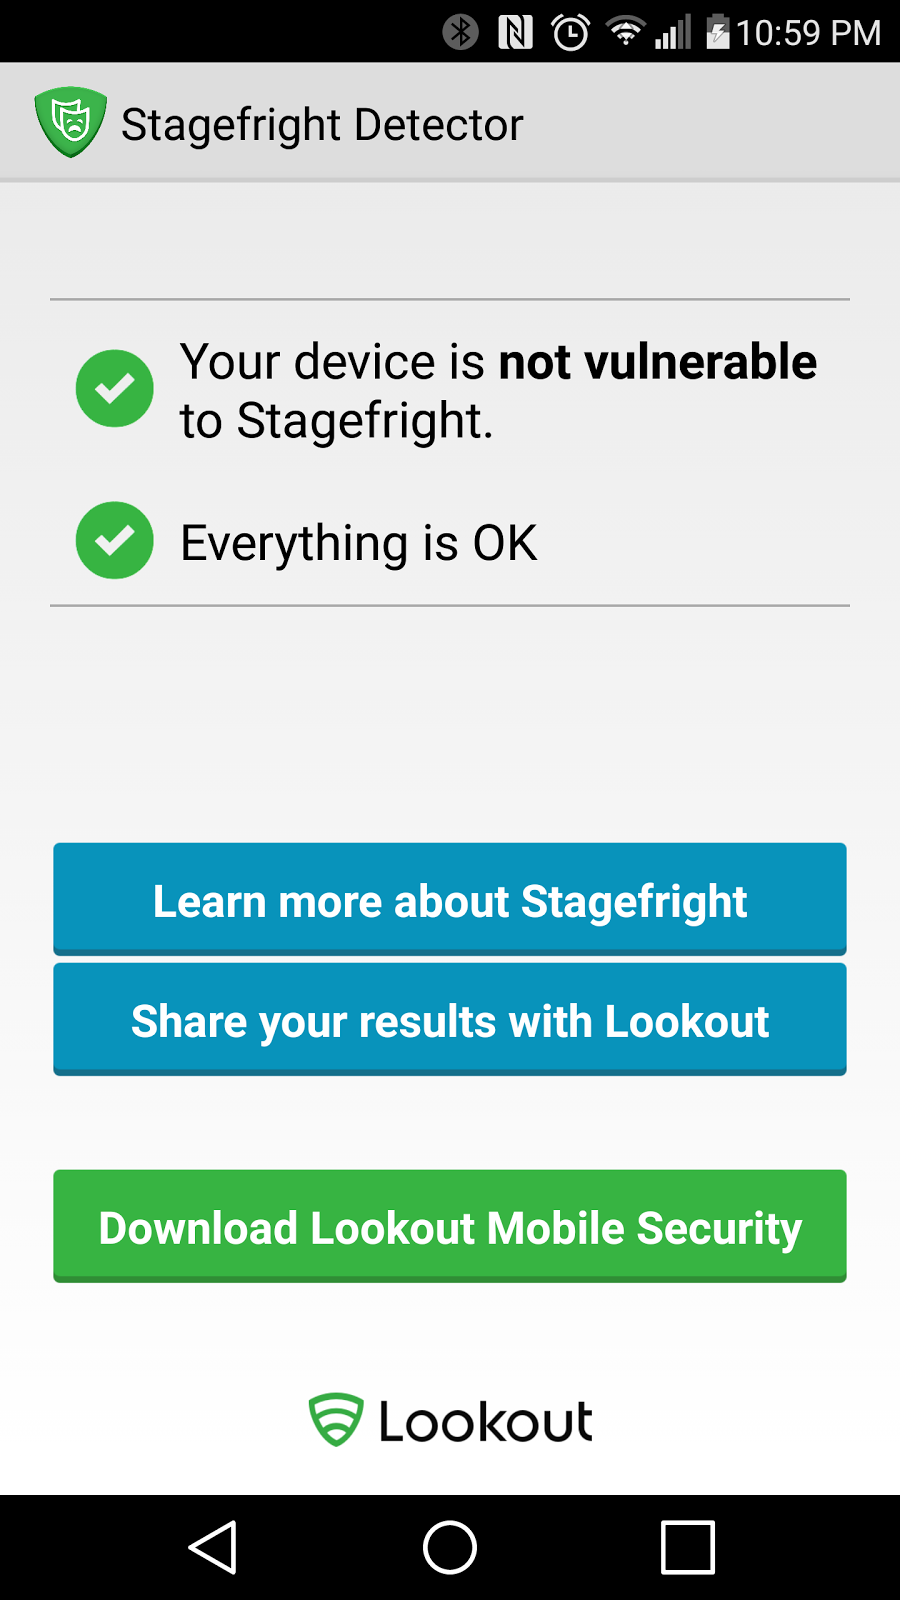 The LG G4 is getting it's security update now ~ Android Coliseum